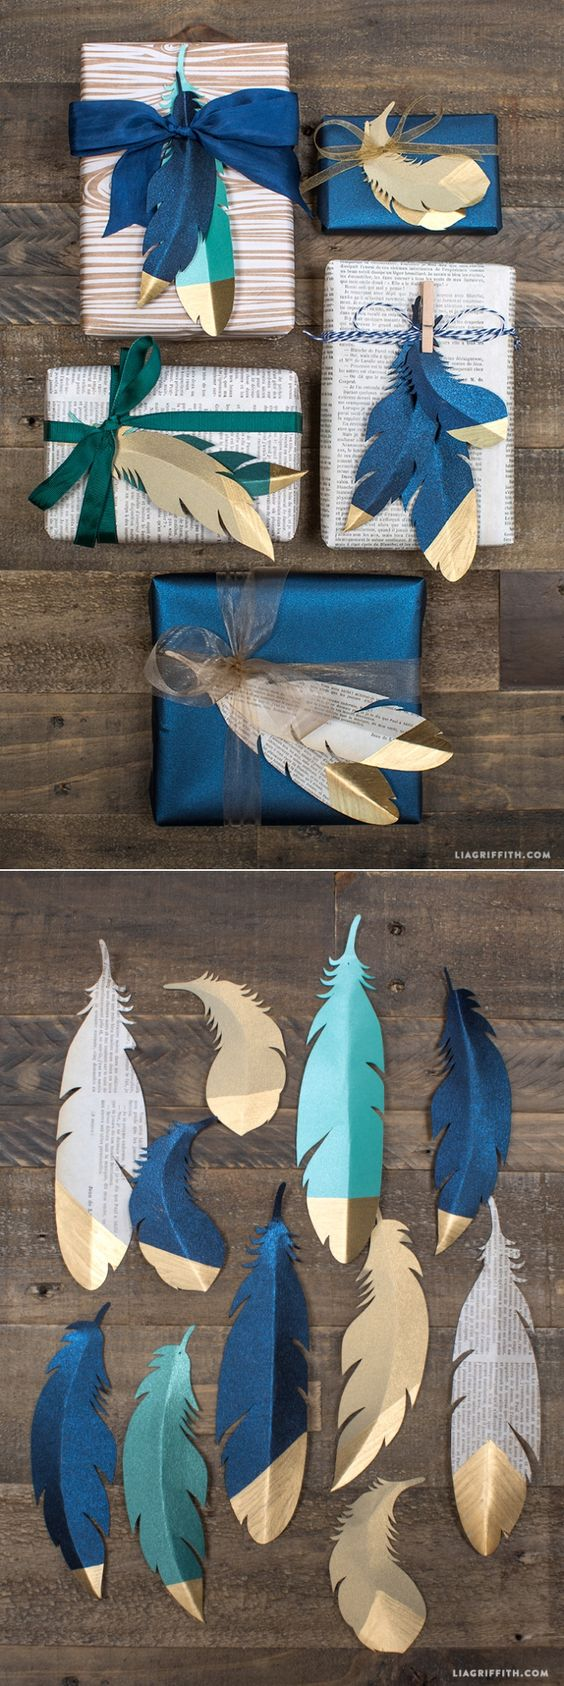 This gift wrap is perfect for any season, with colorful gold-tipped paper feathers and ribbon